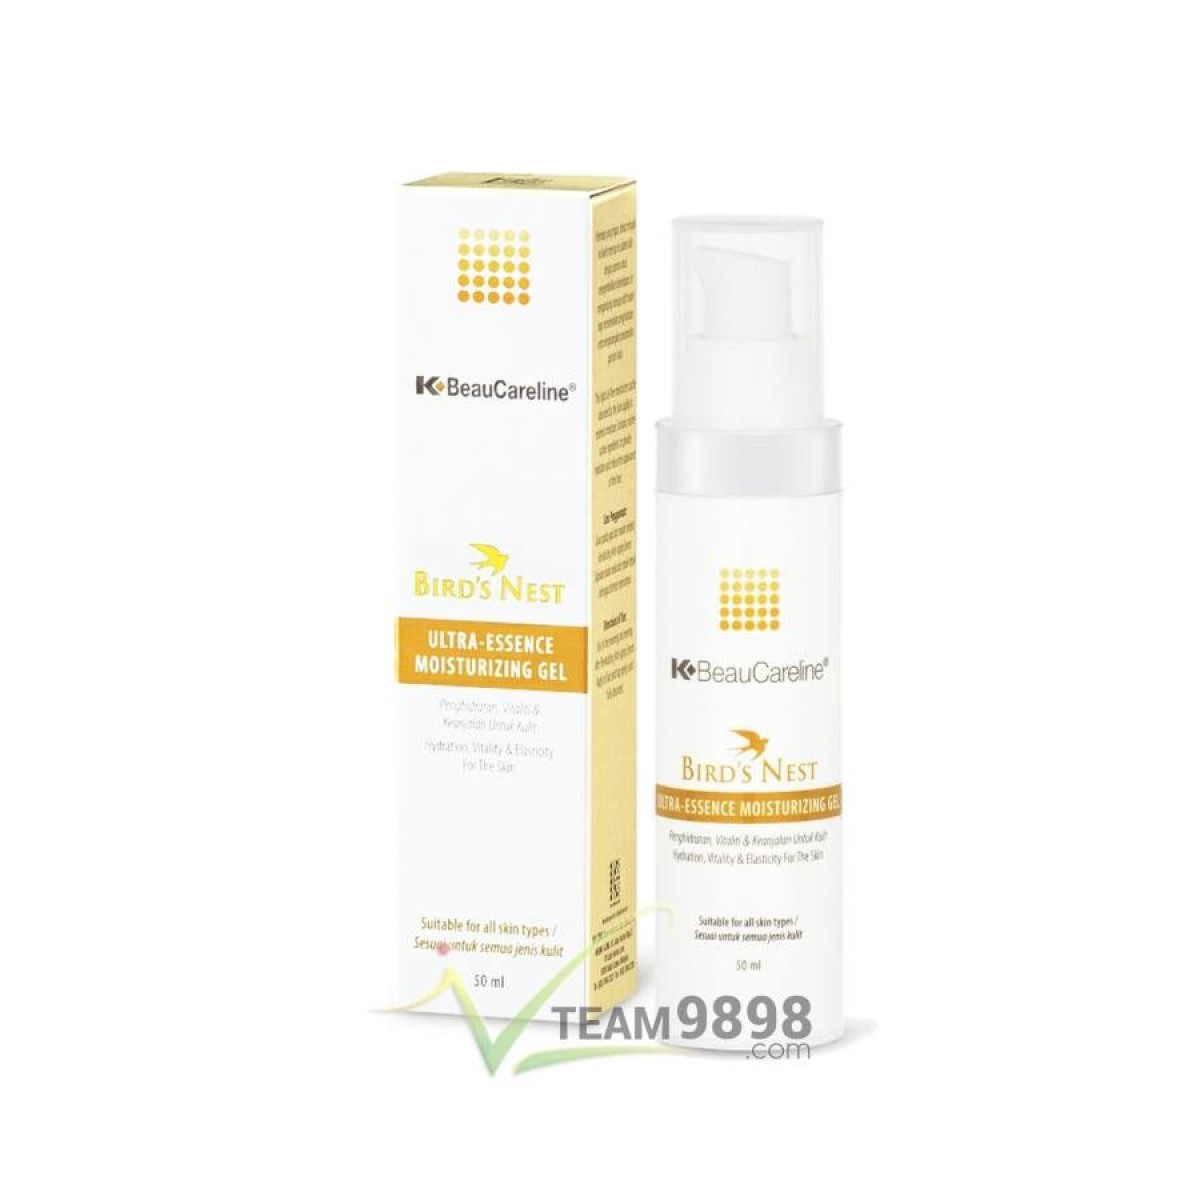 K-BeauCareline Ultra-Essence Moisturizing Gel